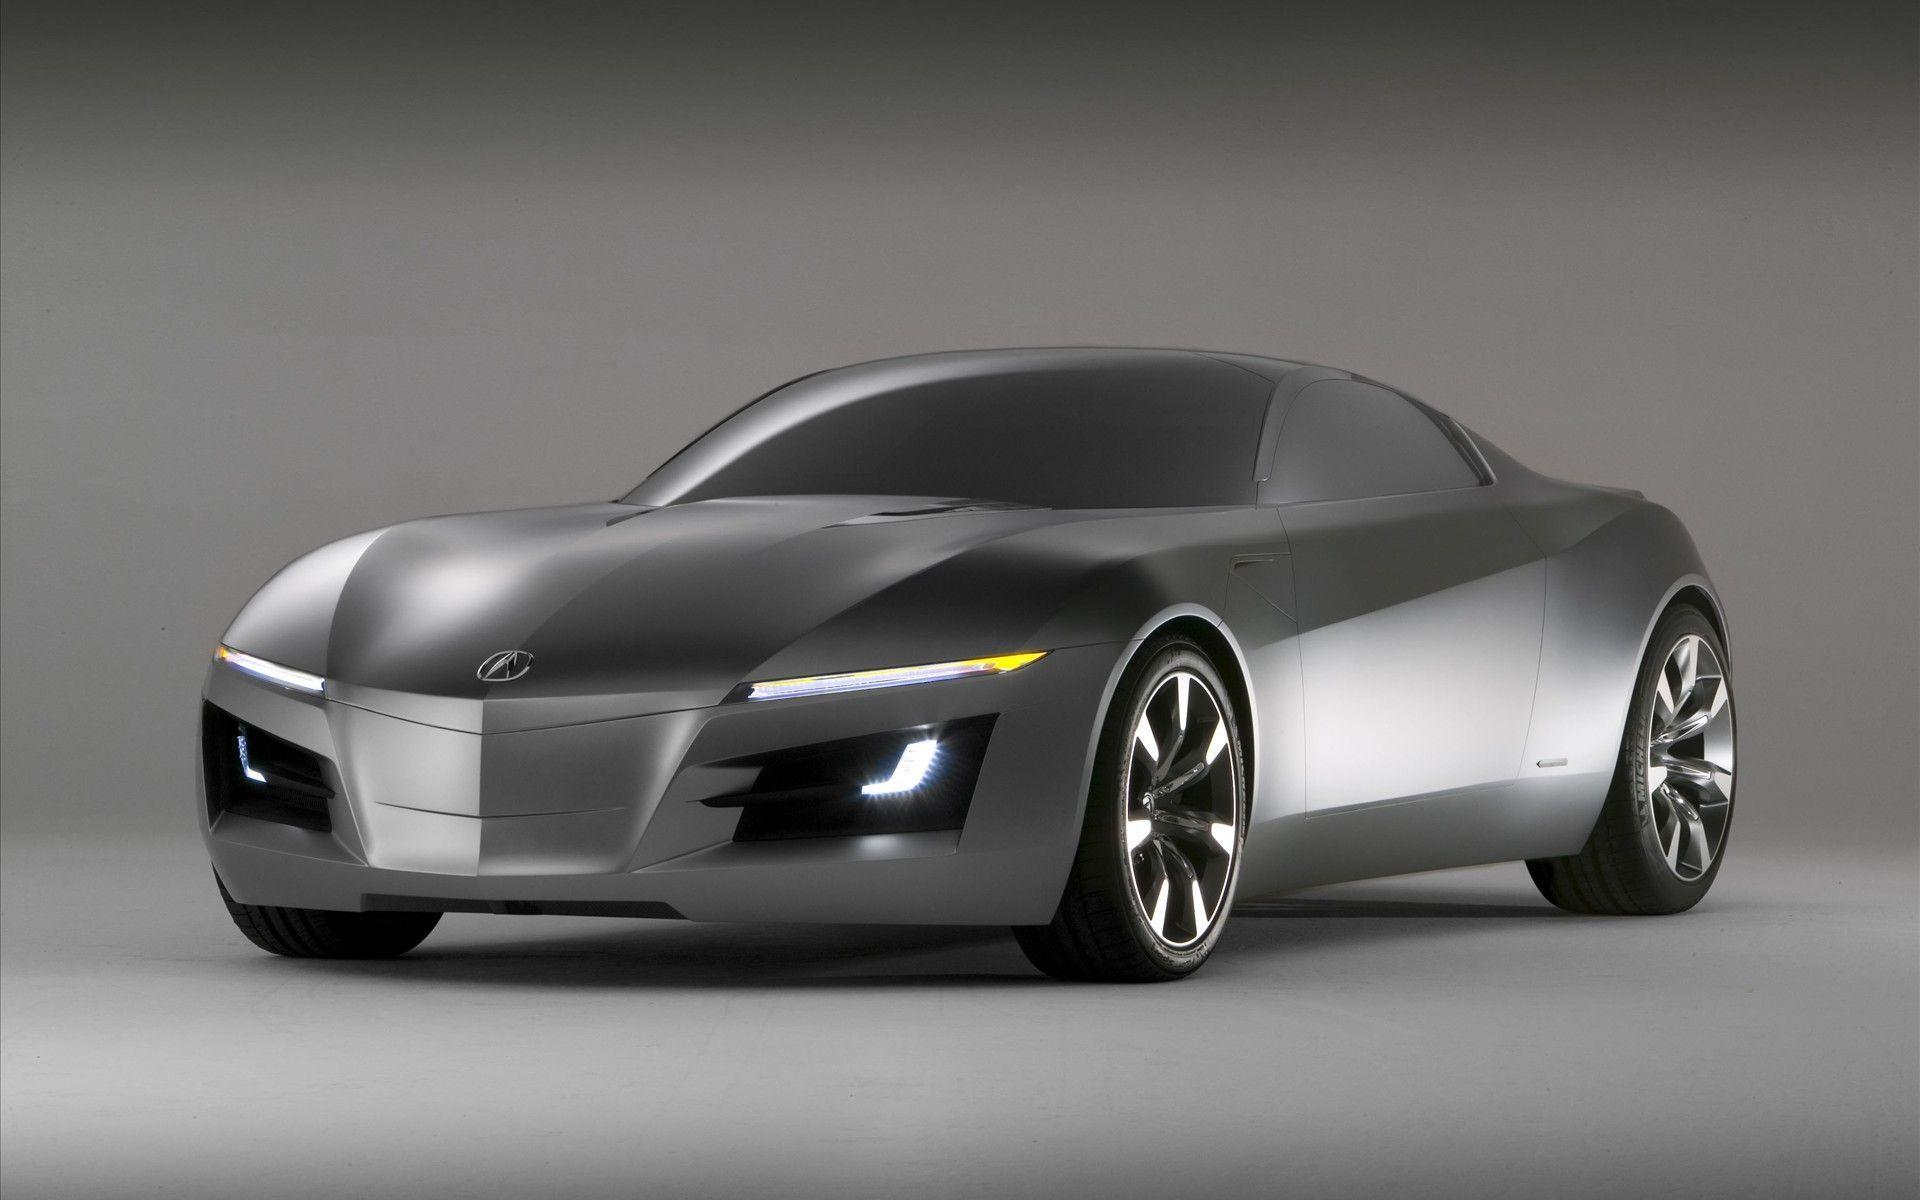 Acura Sports Car Wallpapers | HD Wallpapers